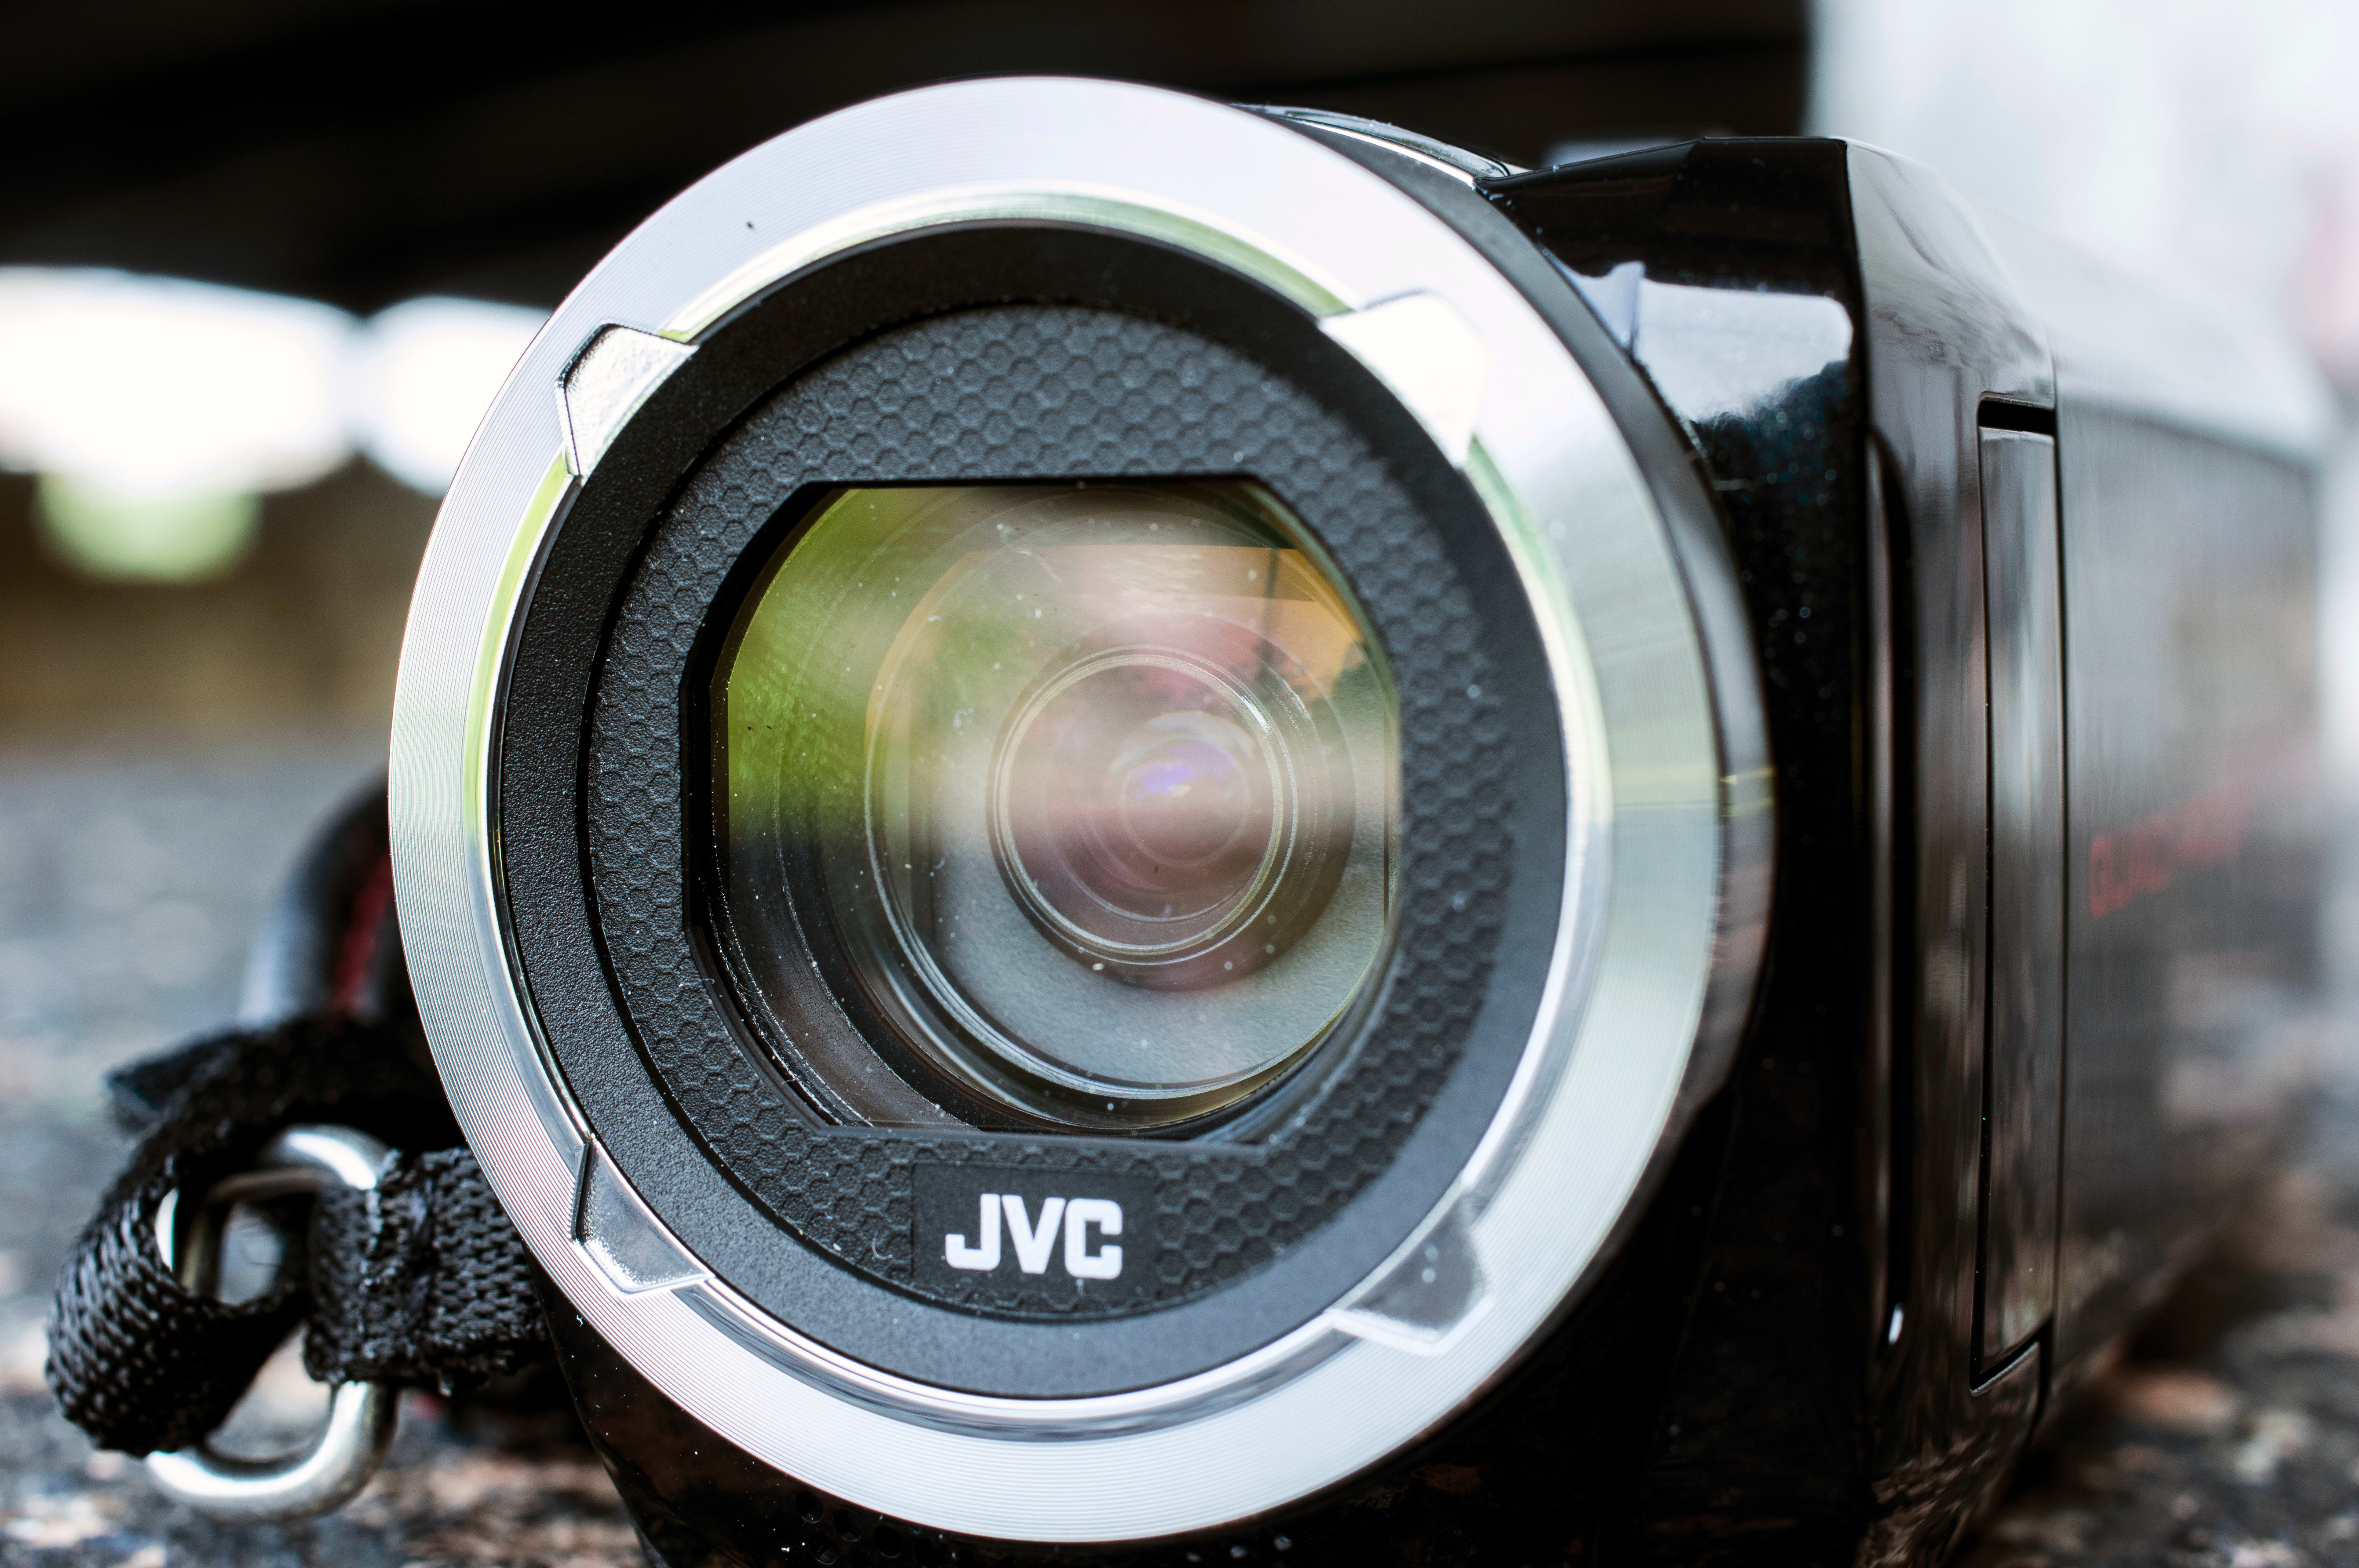 Closer look at the 40x optical zoom f/1.8 lens.